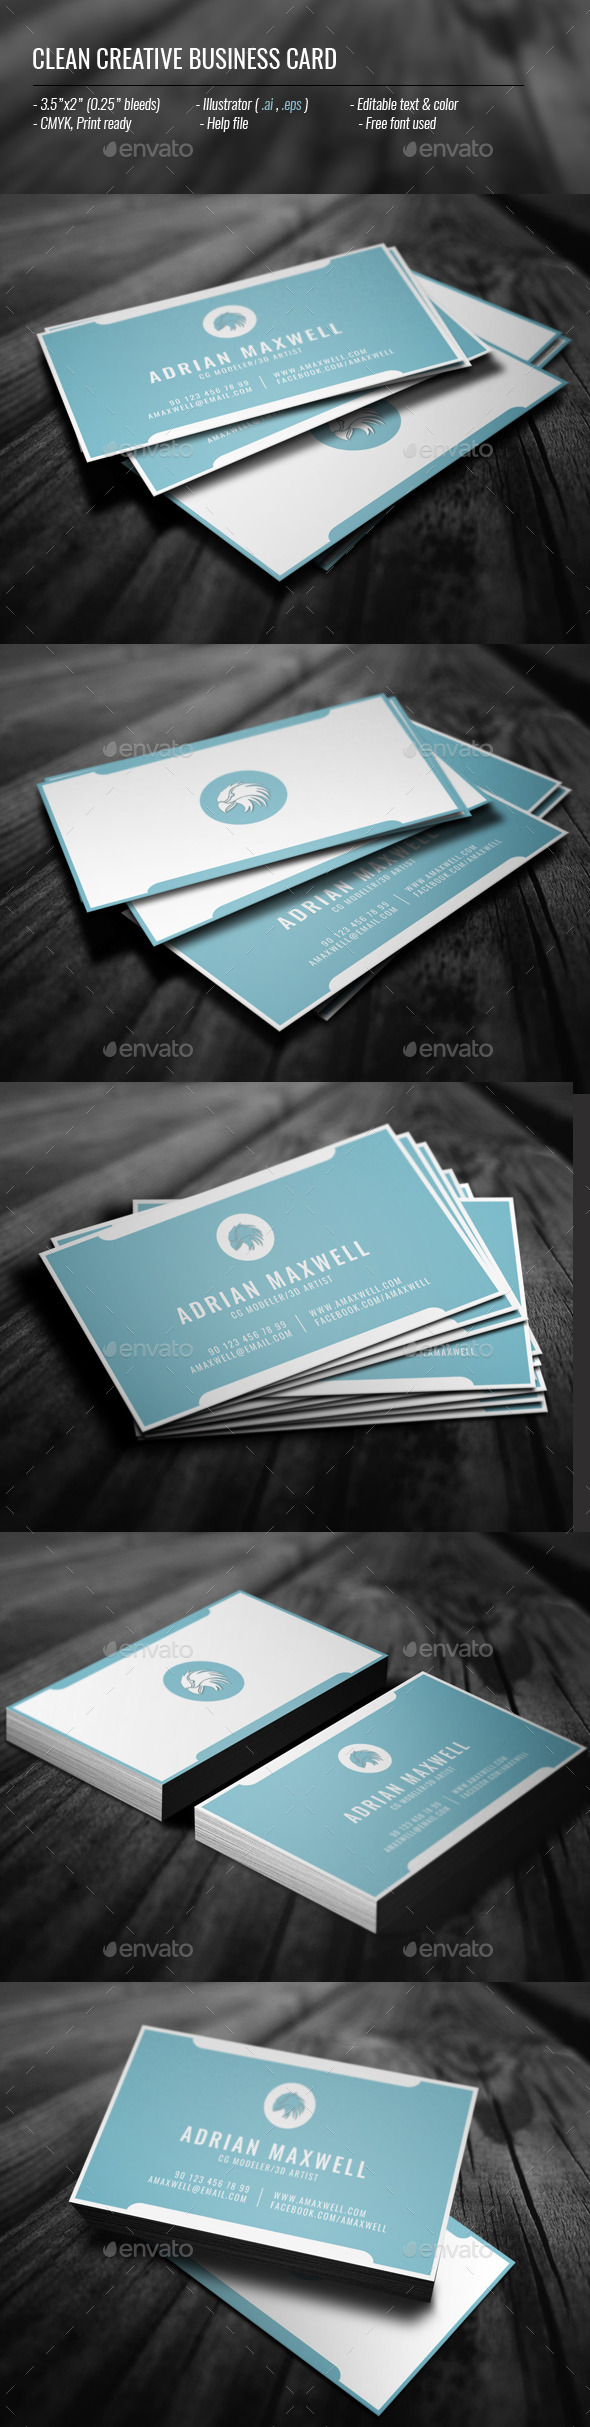 GraphicRiver Clean Creative Business Card 11773543